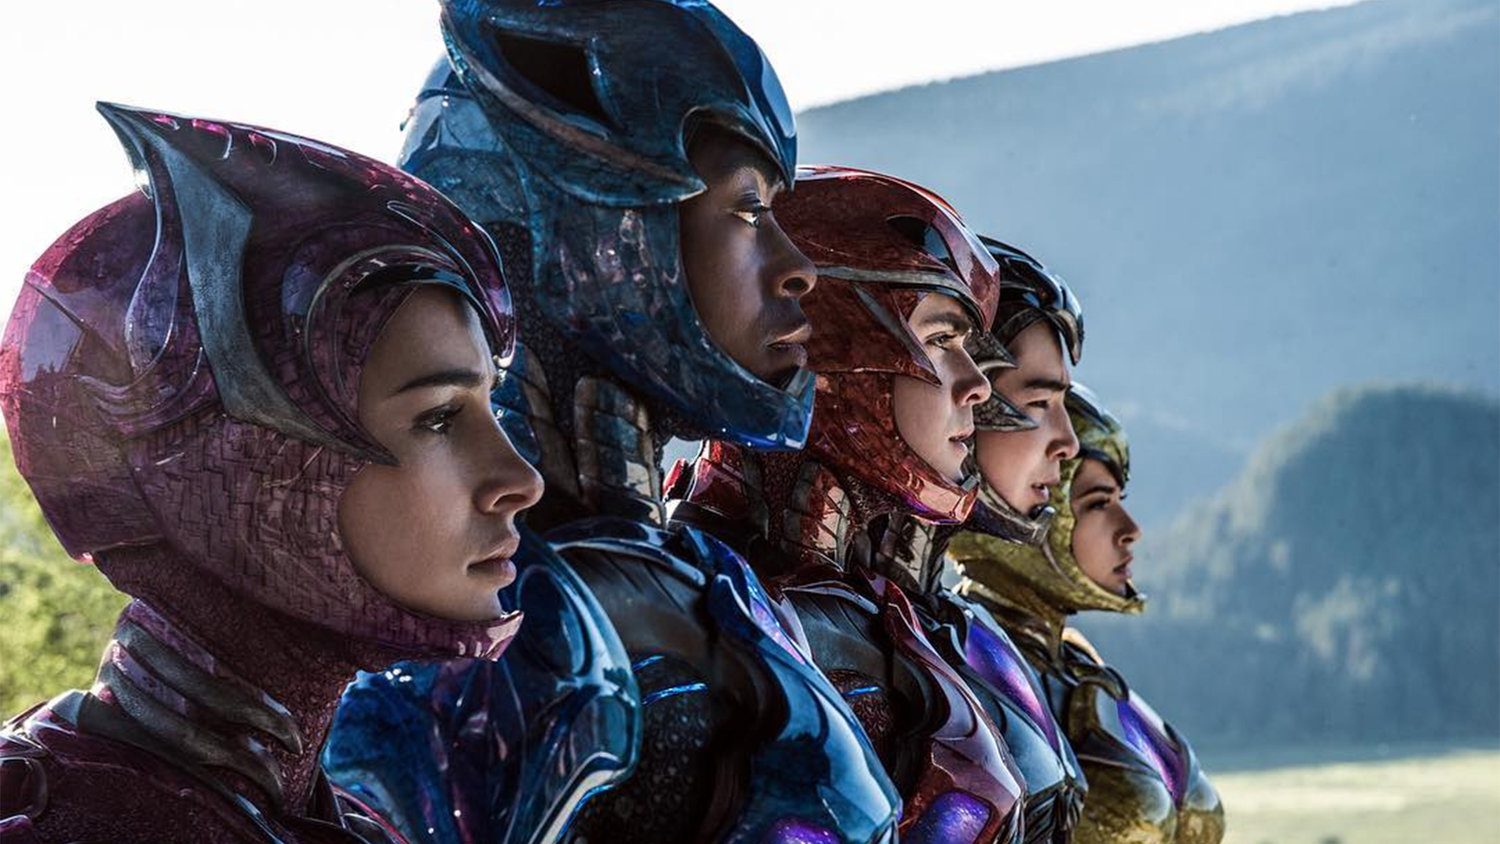 The POWER RANGERS Cast Wants the Green Ranger to Be a Girl